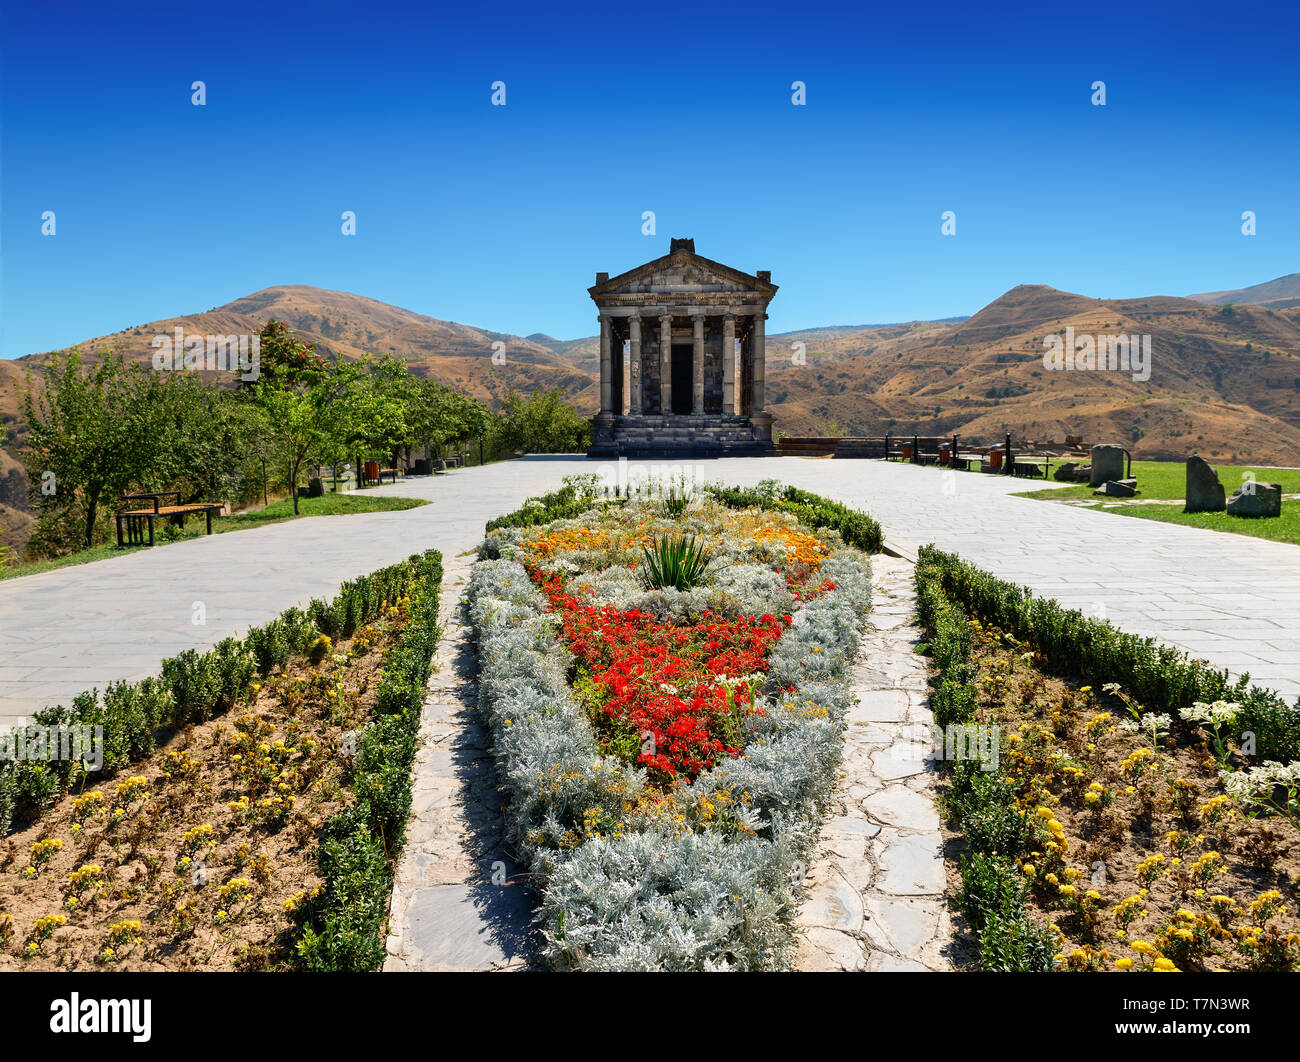 One of the most interesting ancient landmarks of Armenia - Garni Temple, Pagan temple, built in Classical Hellenistic style, Kotayk Province. - Stock Image